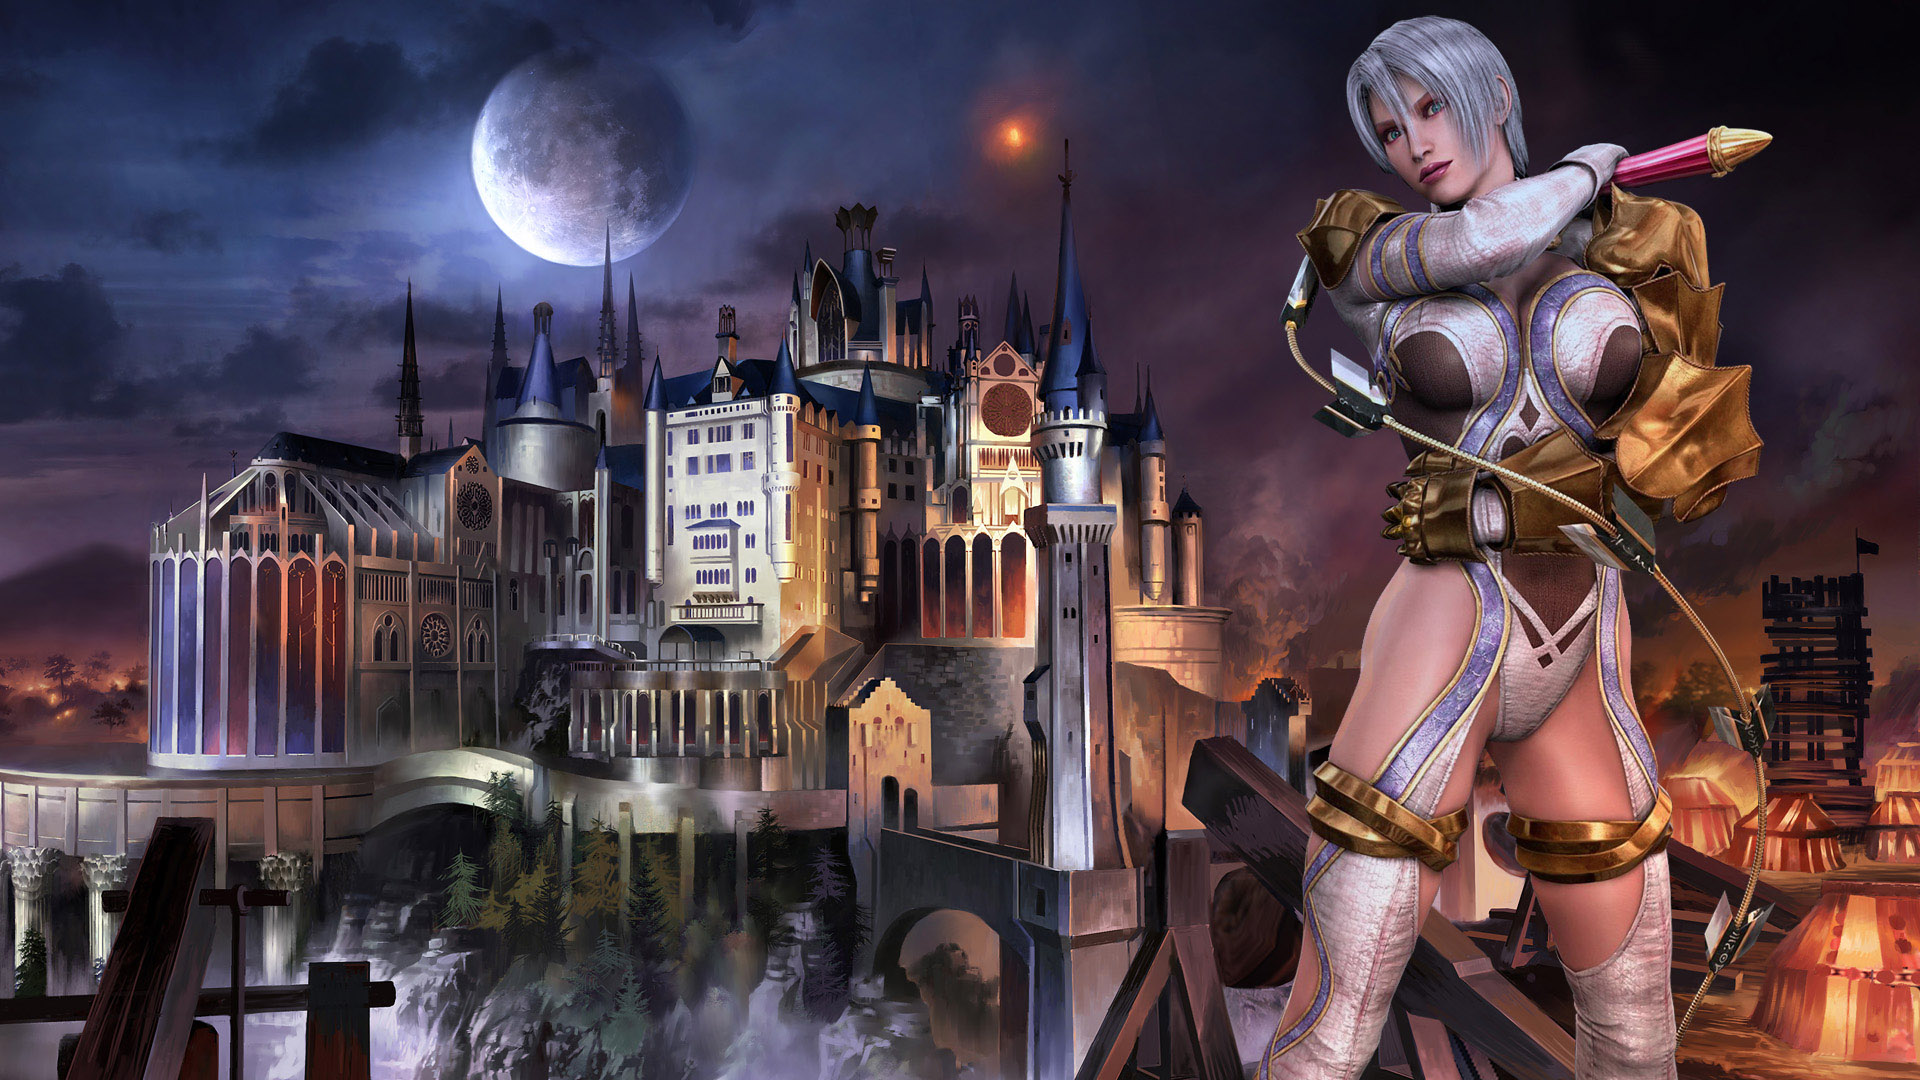 Souls Ps3 Soul Calibur 4 Characters Ps3